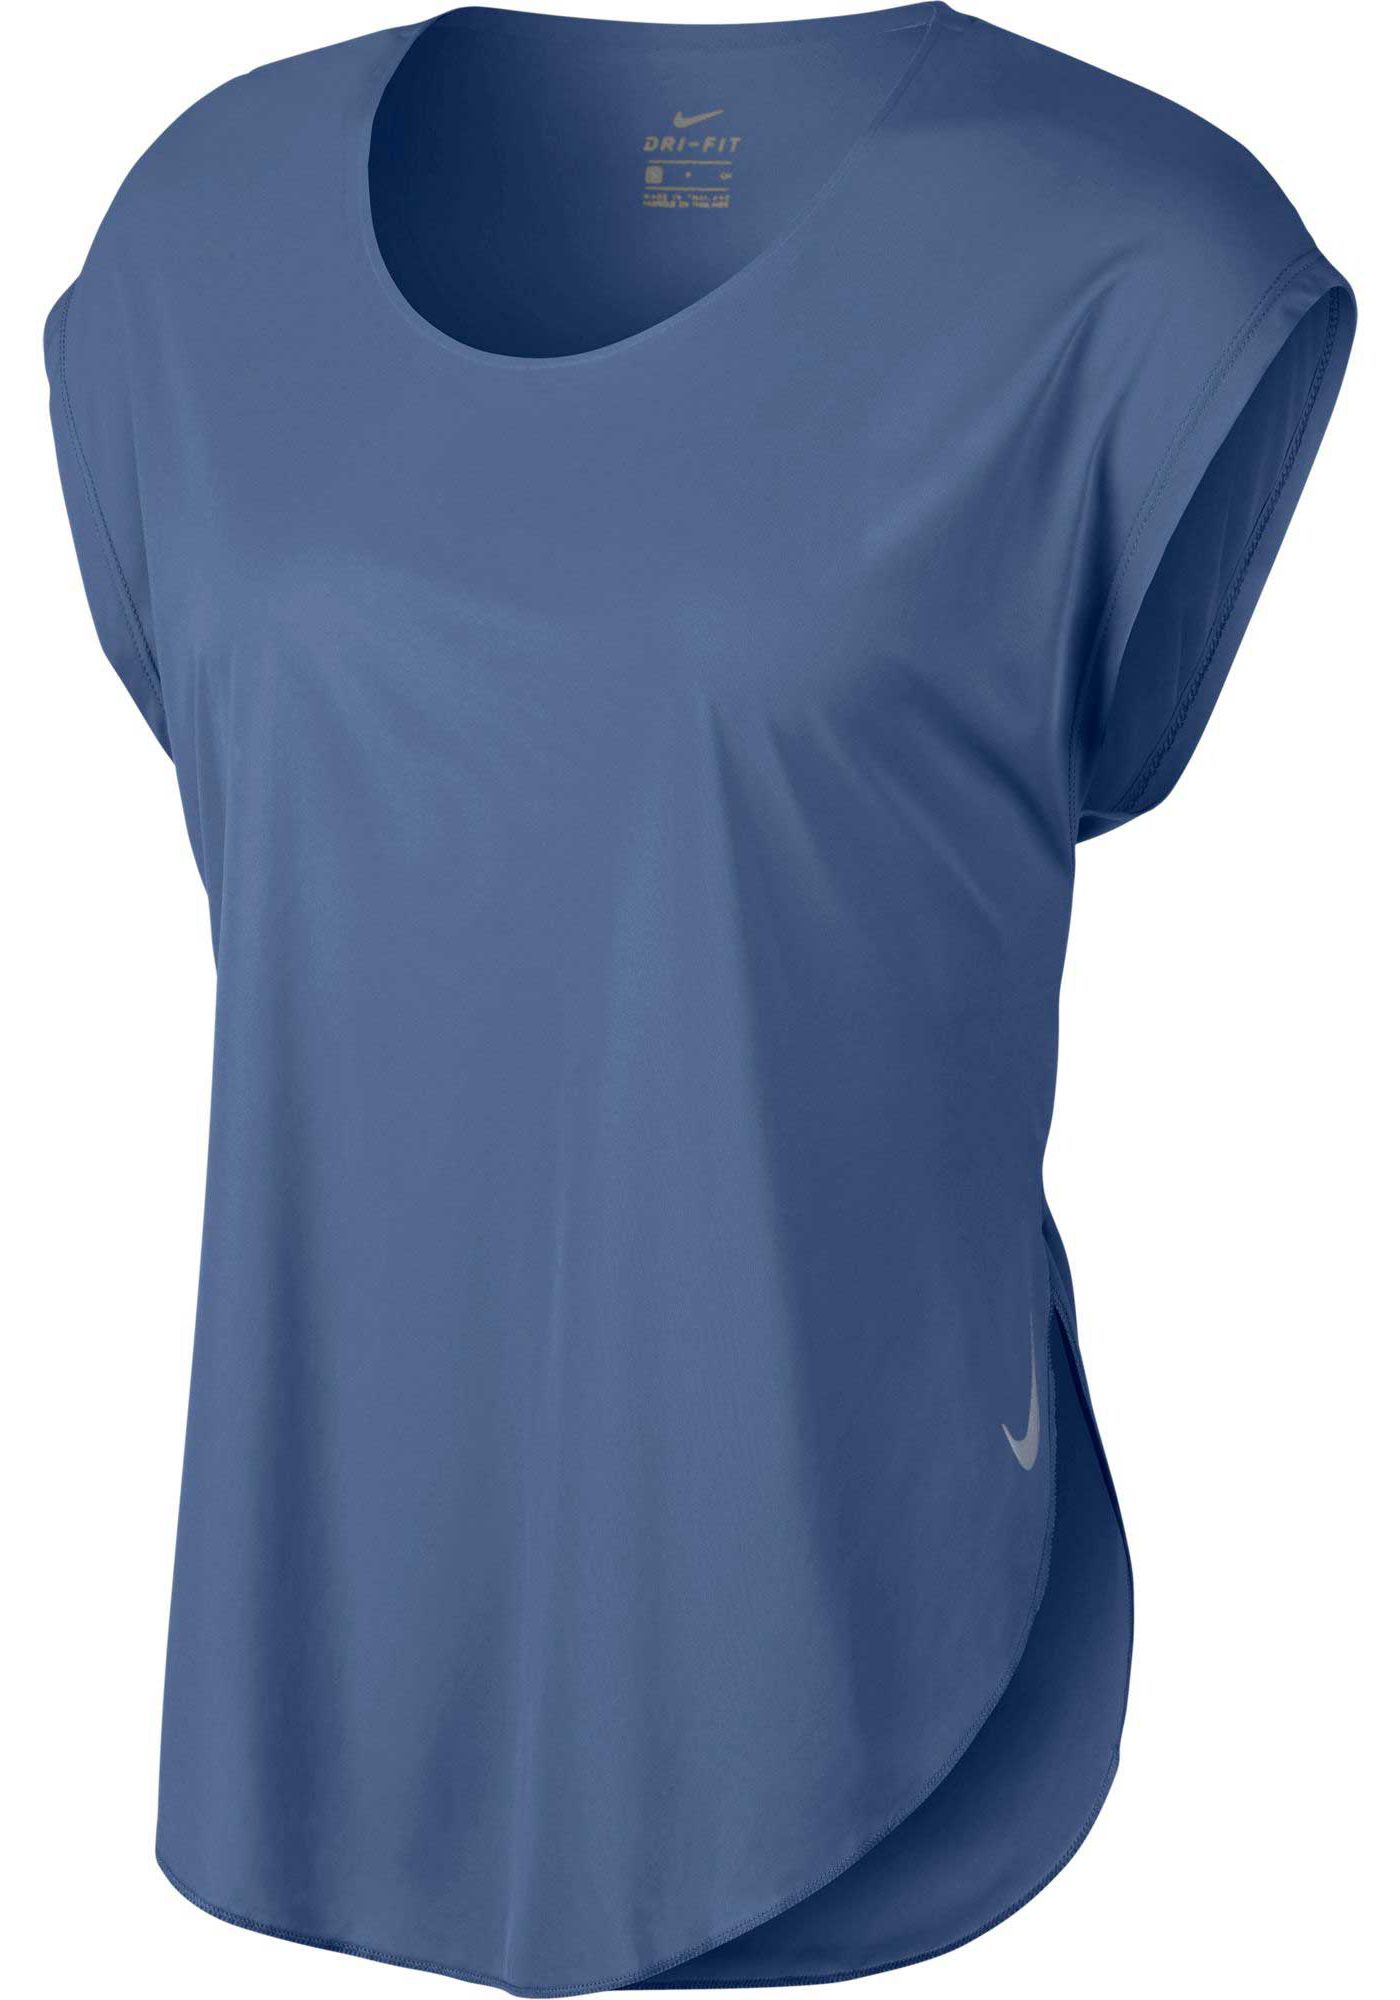 Nike Women's City Sleek Short-Sleeve Running Top